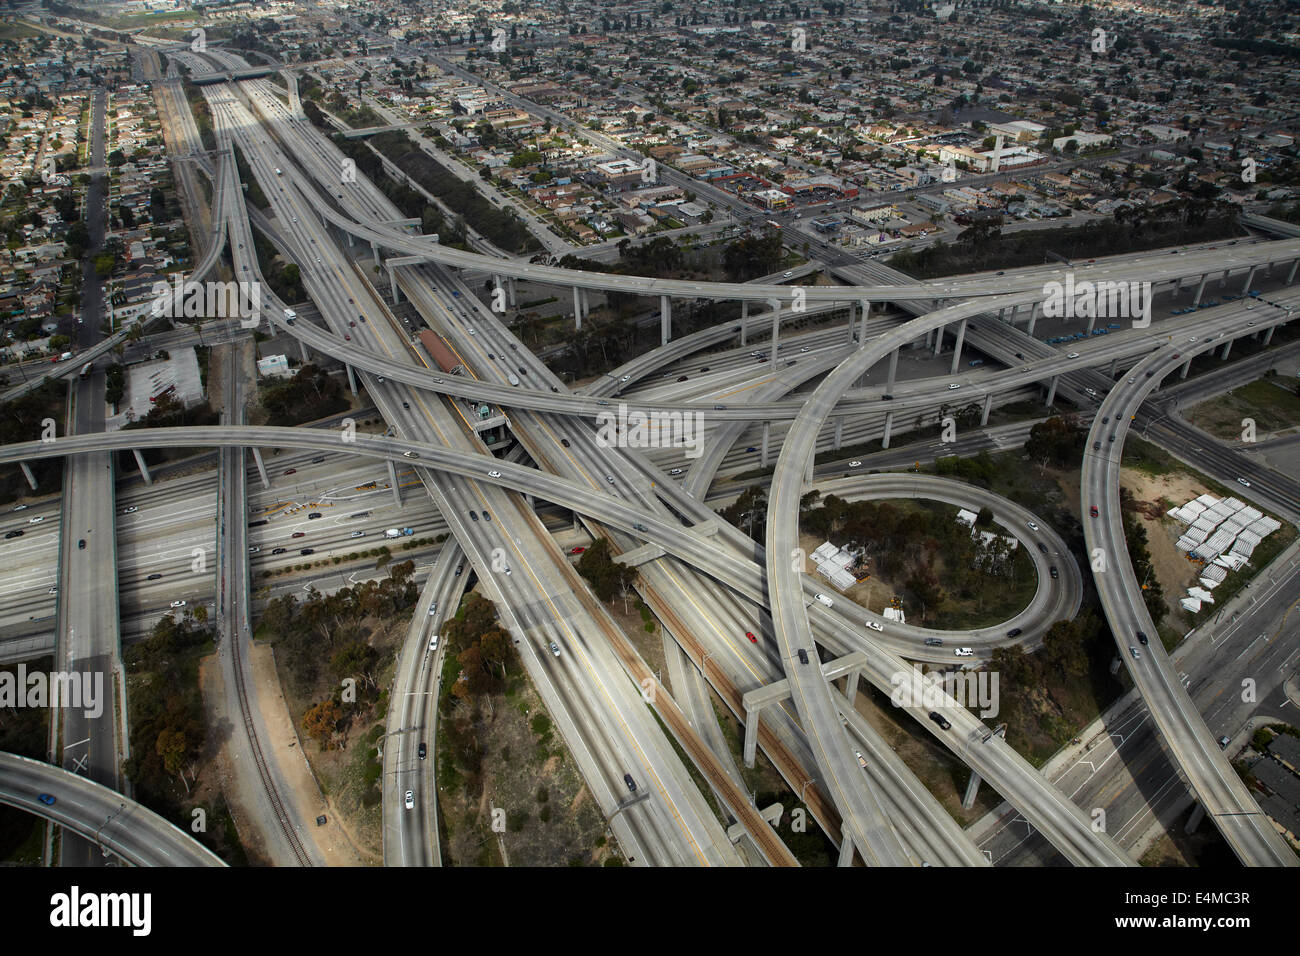 Judge Harry Pregerson Interchange, junction of I-105 and I-110 (Glenn Anderson Freeway and Harbor Freeway), Los - Stock Image